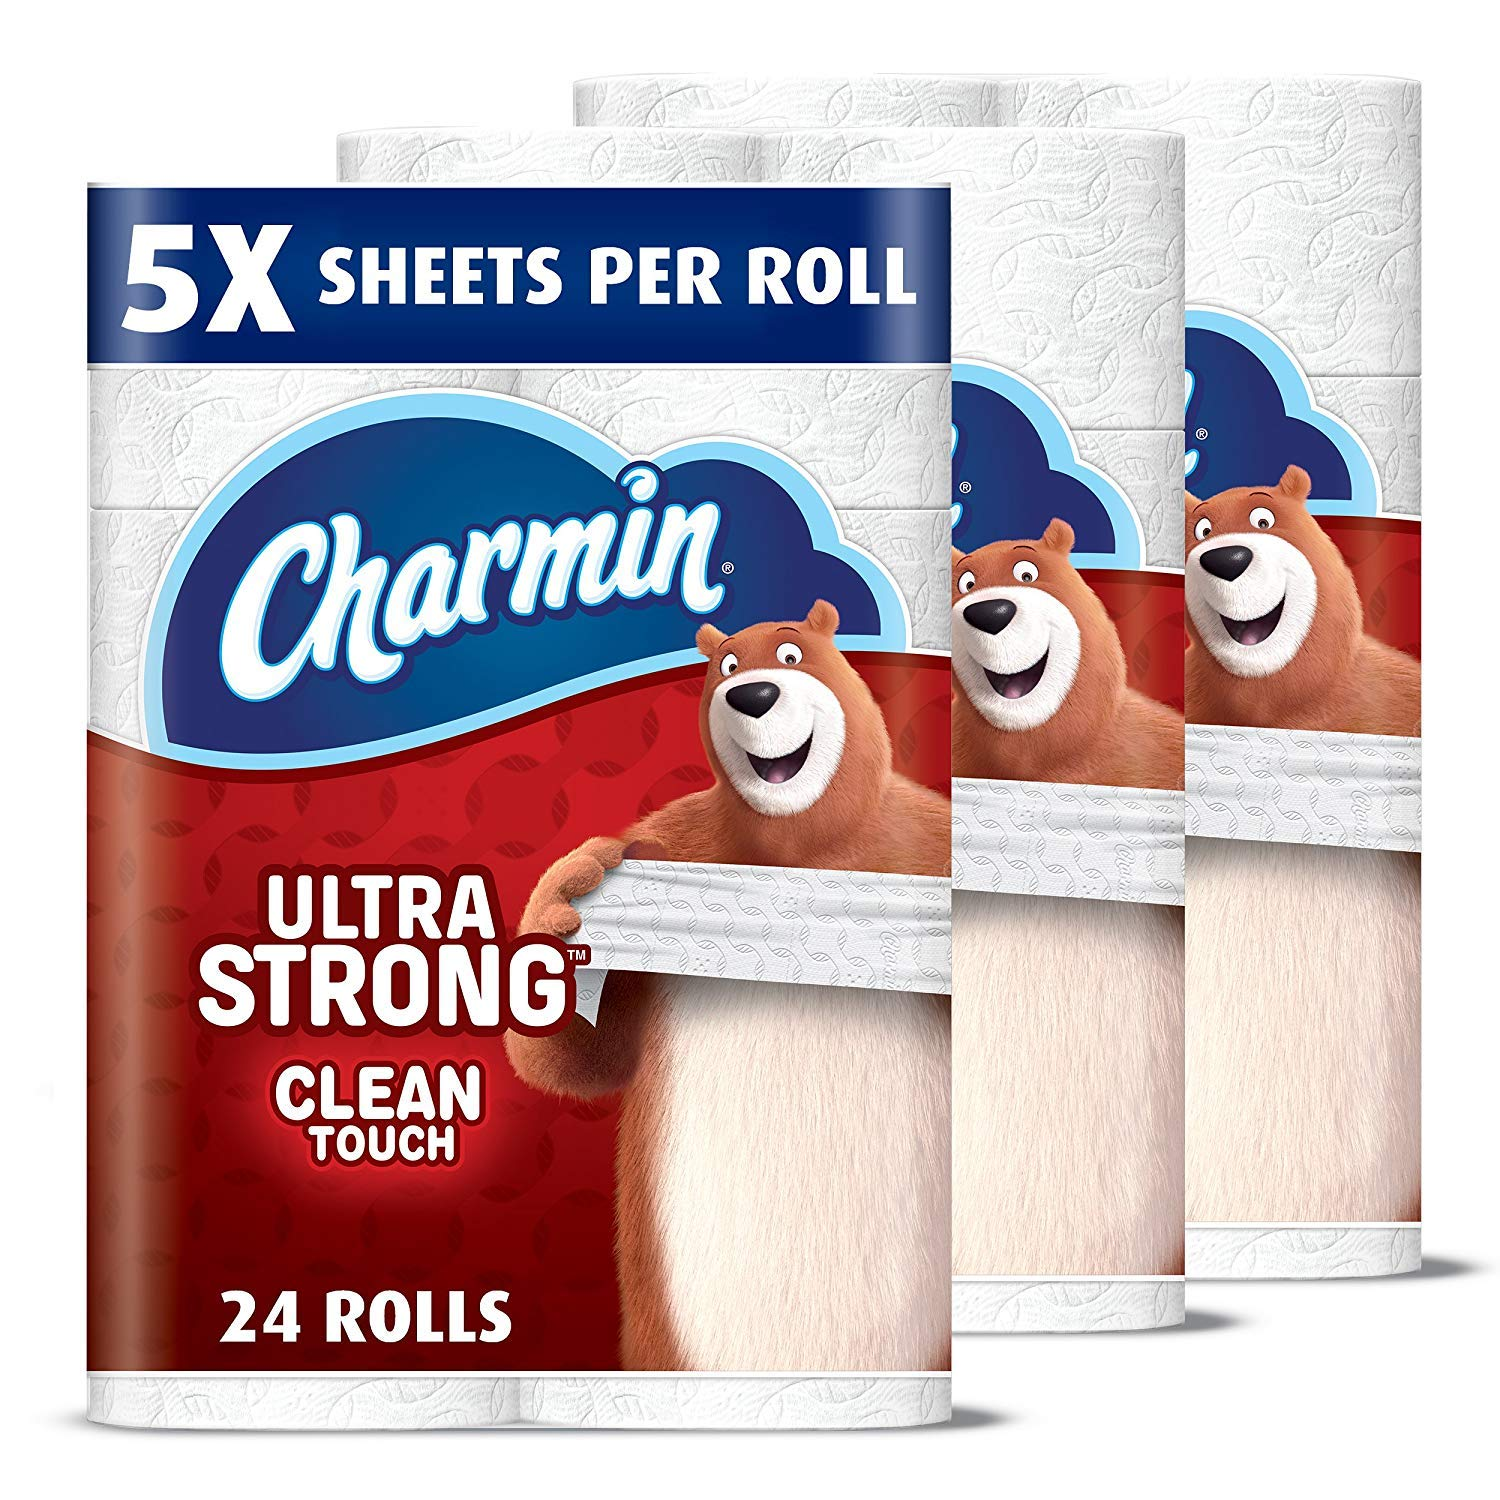 Charmin Ultra Strong Clean Touch Toilet Paper, 24 Family Mega Rolls (Equal to 123 Regular Rolls) by Charmin